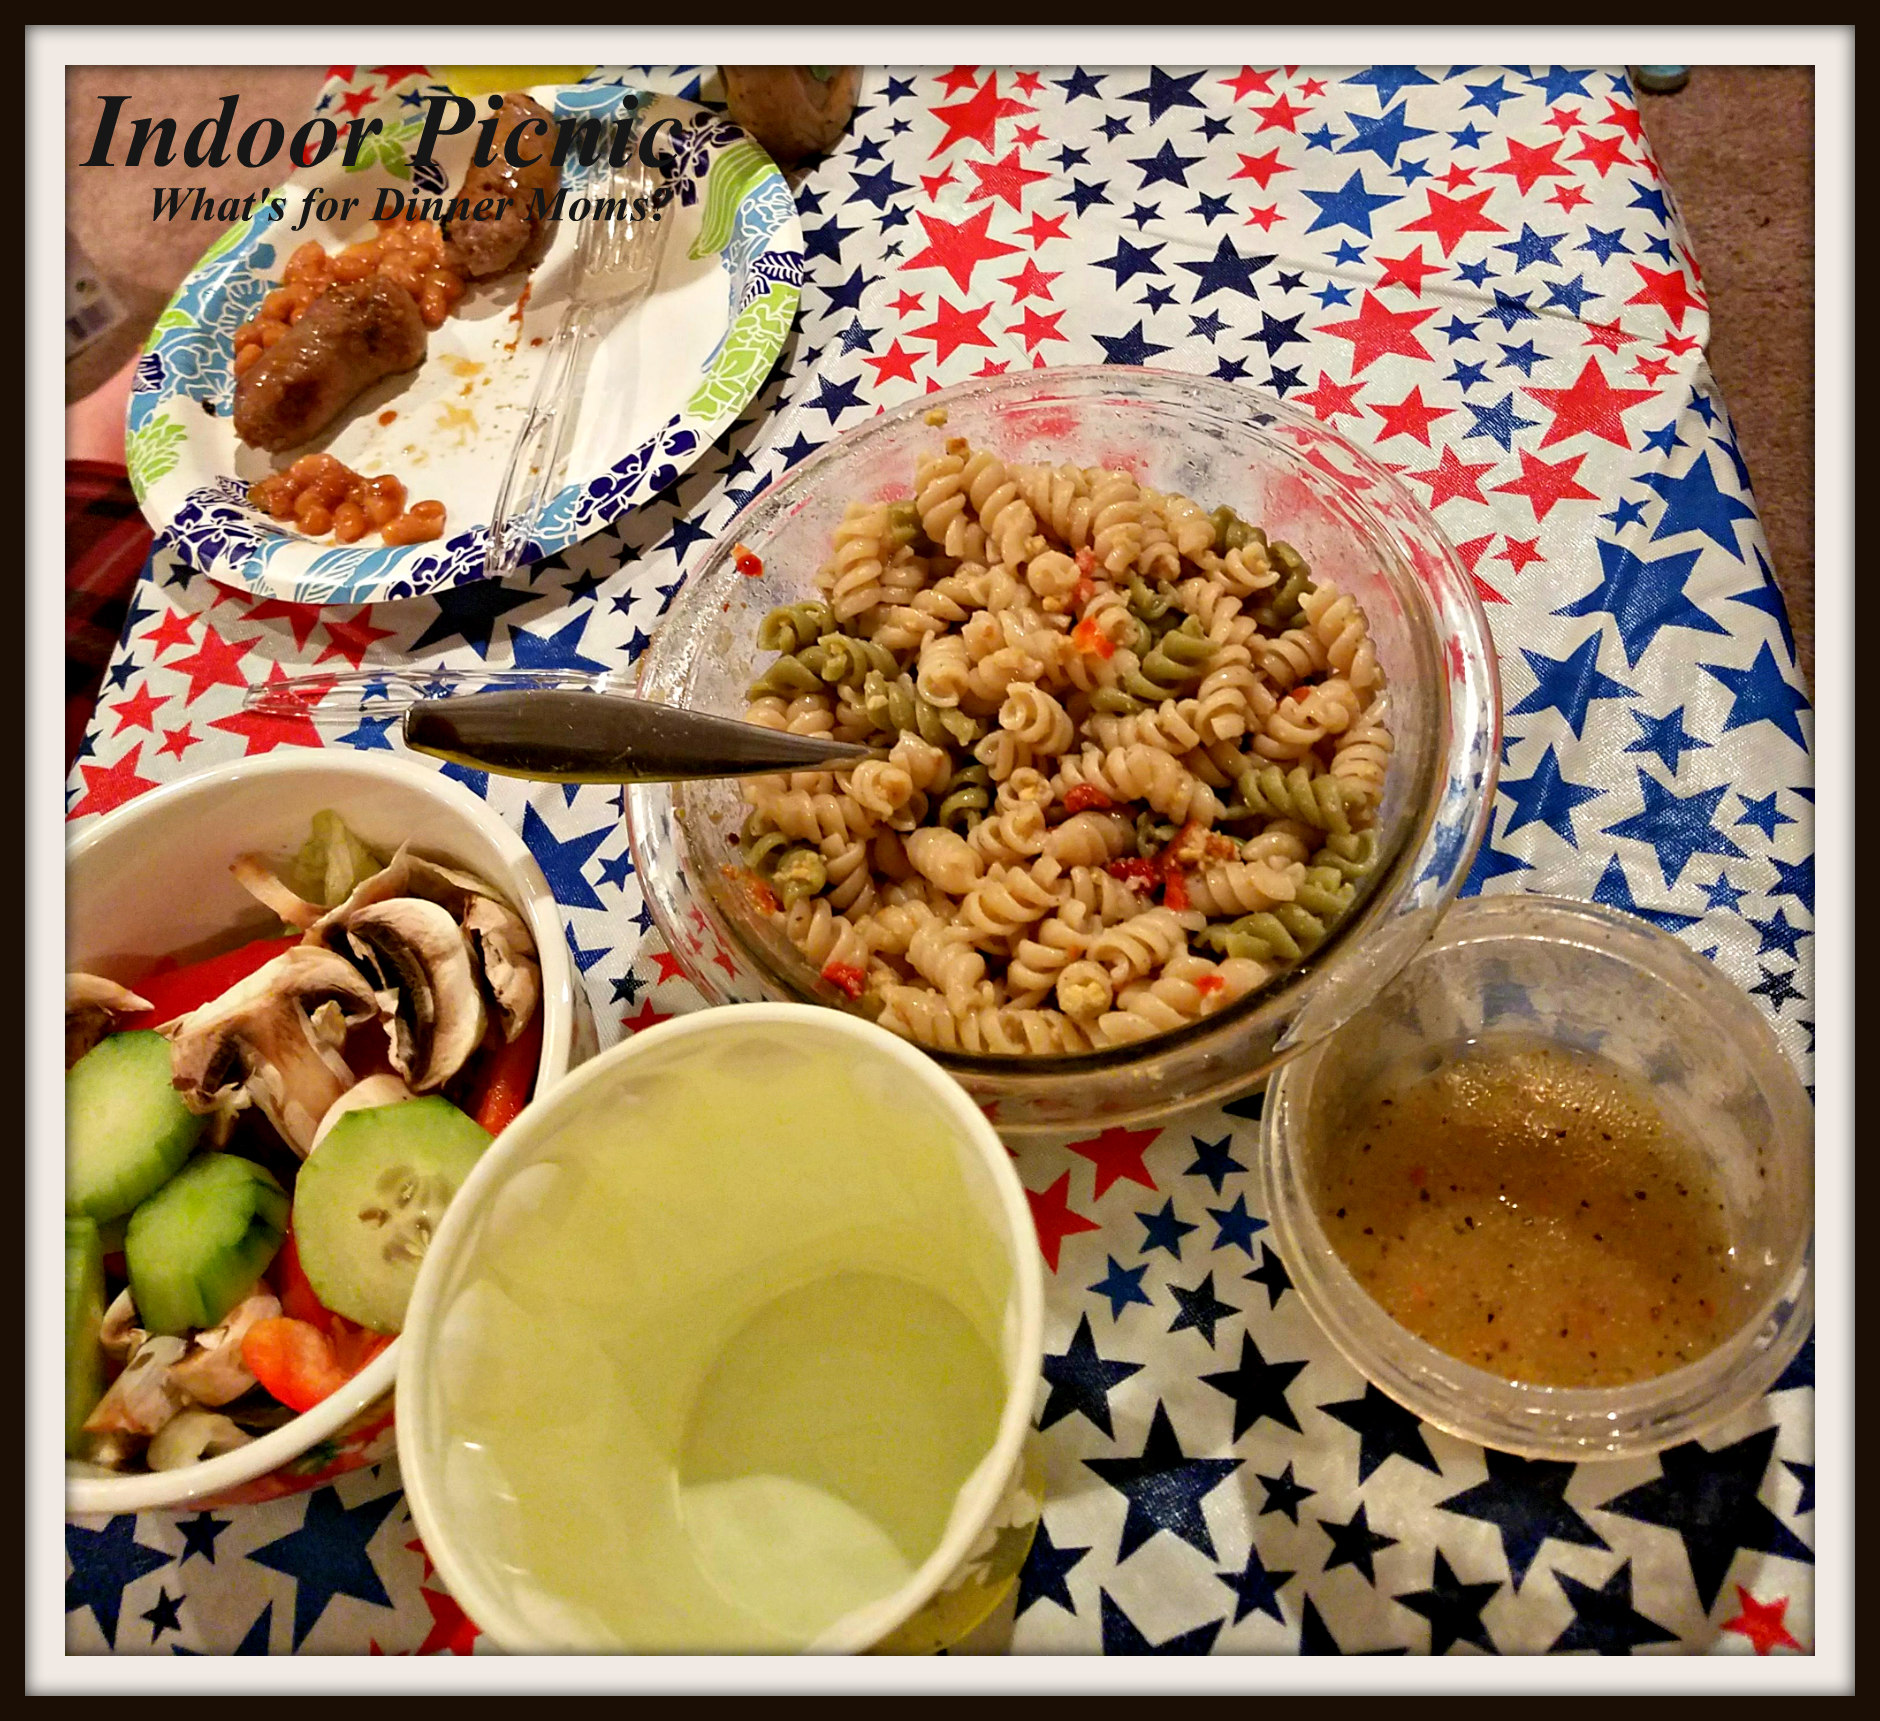 Indoor Picknick indoor picnic 5 tips for a meal what s for dinner